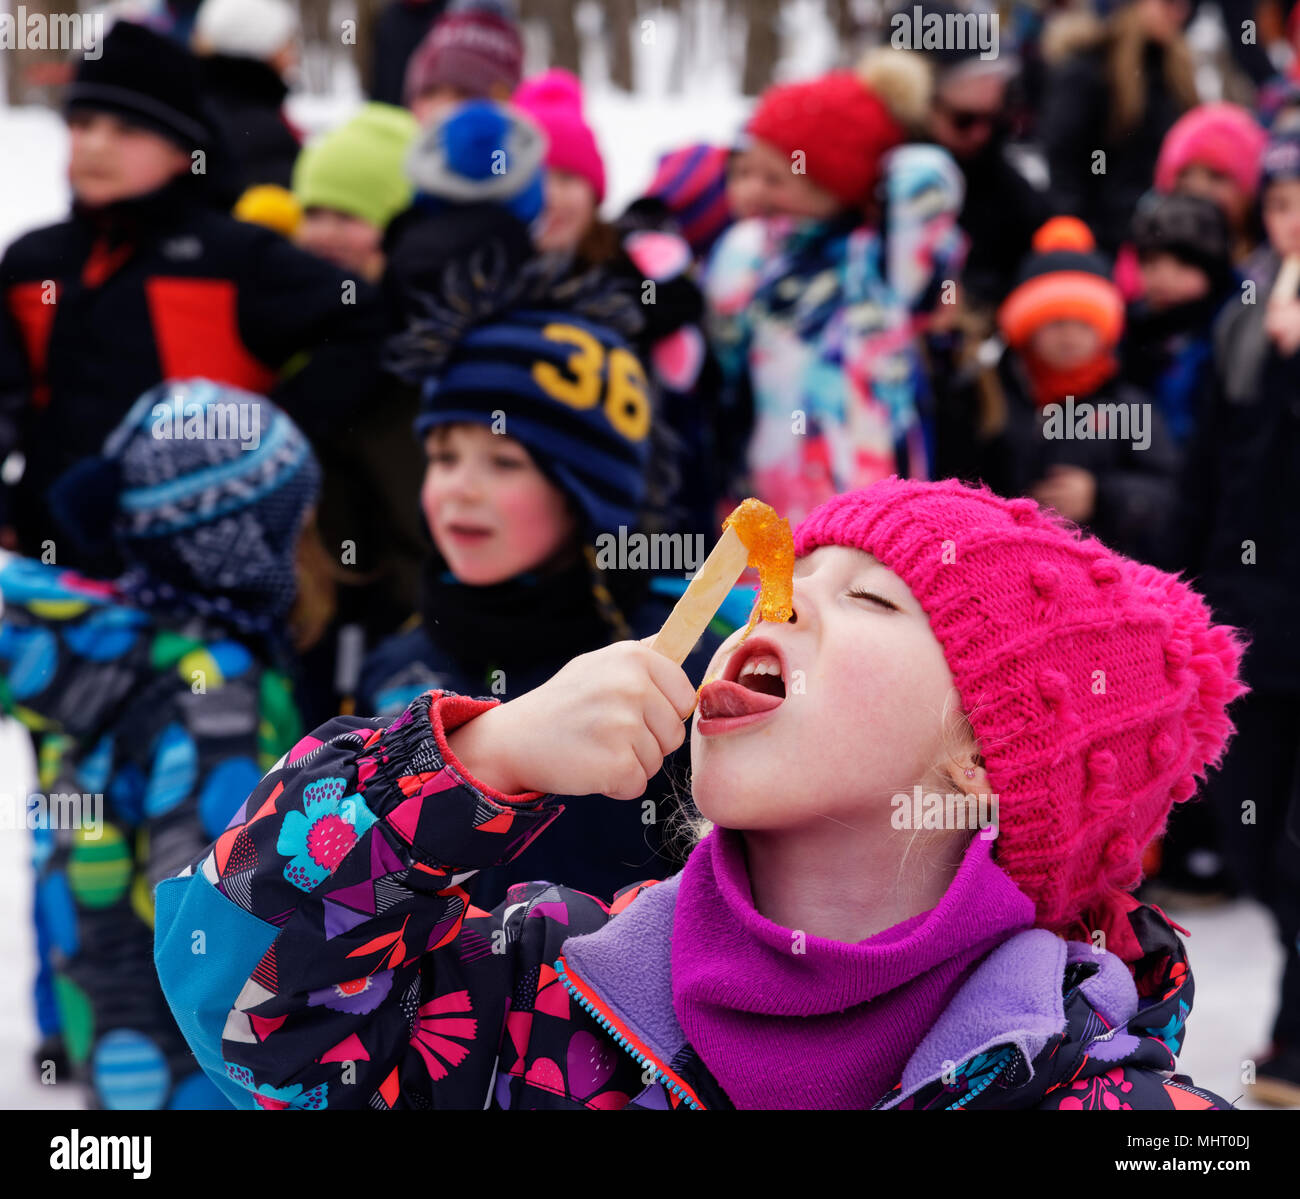 a-young-girl-5-yr-old-eyes-closed-in-blissful-expectation-eating-maple-syrup-taffy-on-a-stick-in-quebec-canada-MHT0DJ.jpg